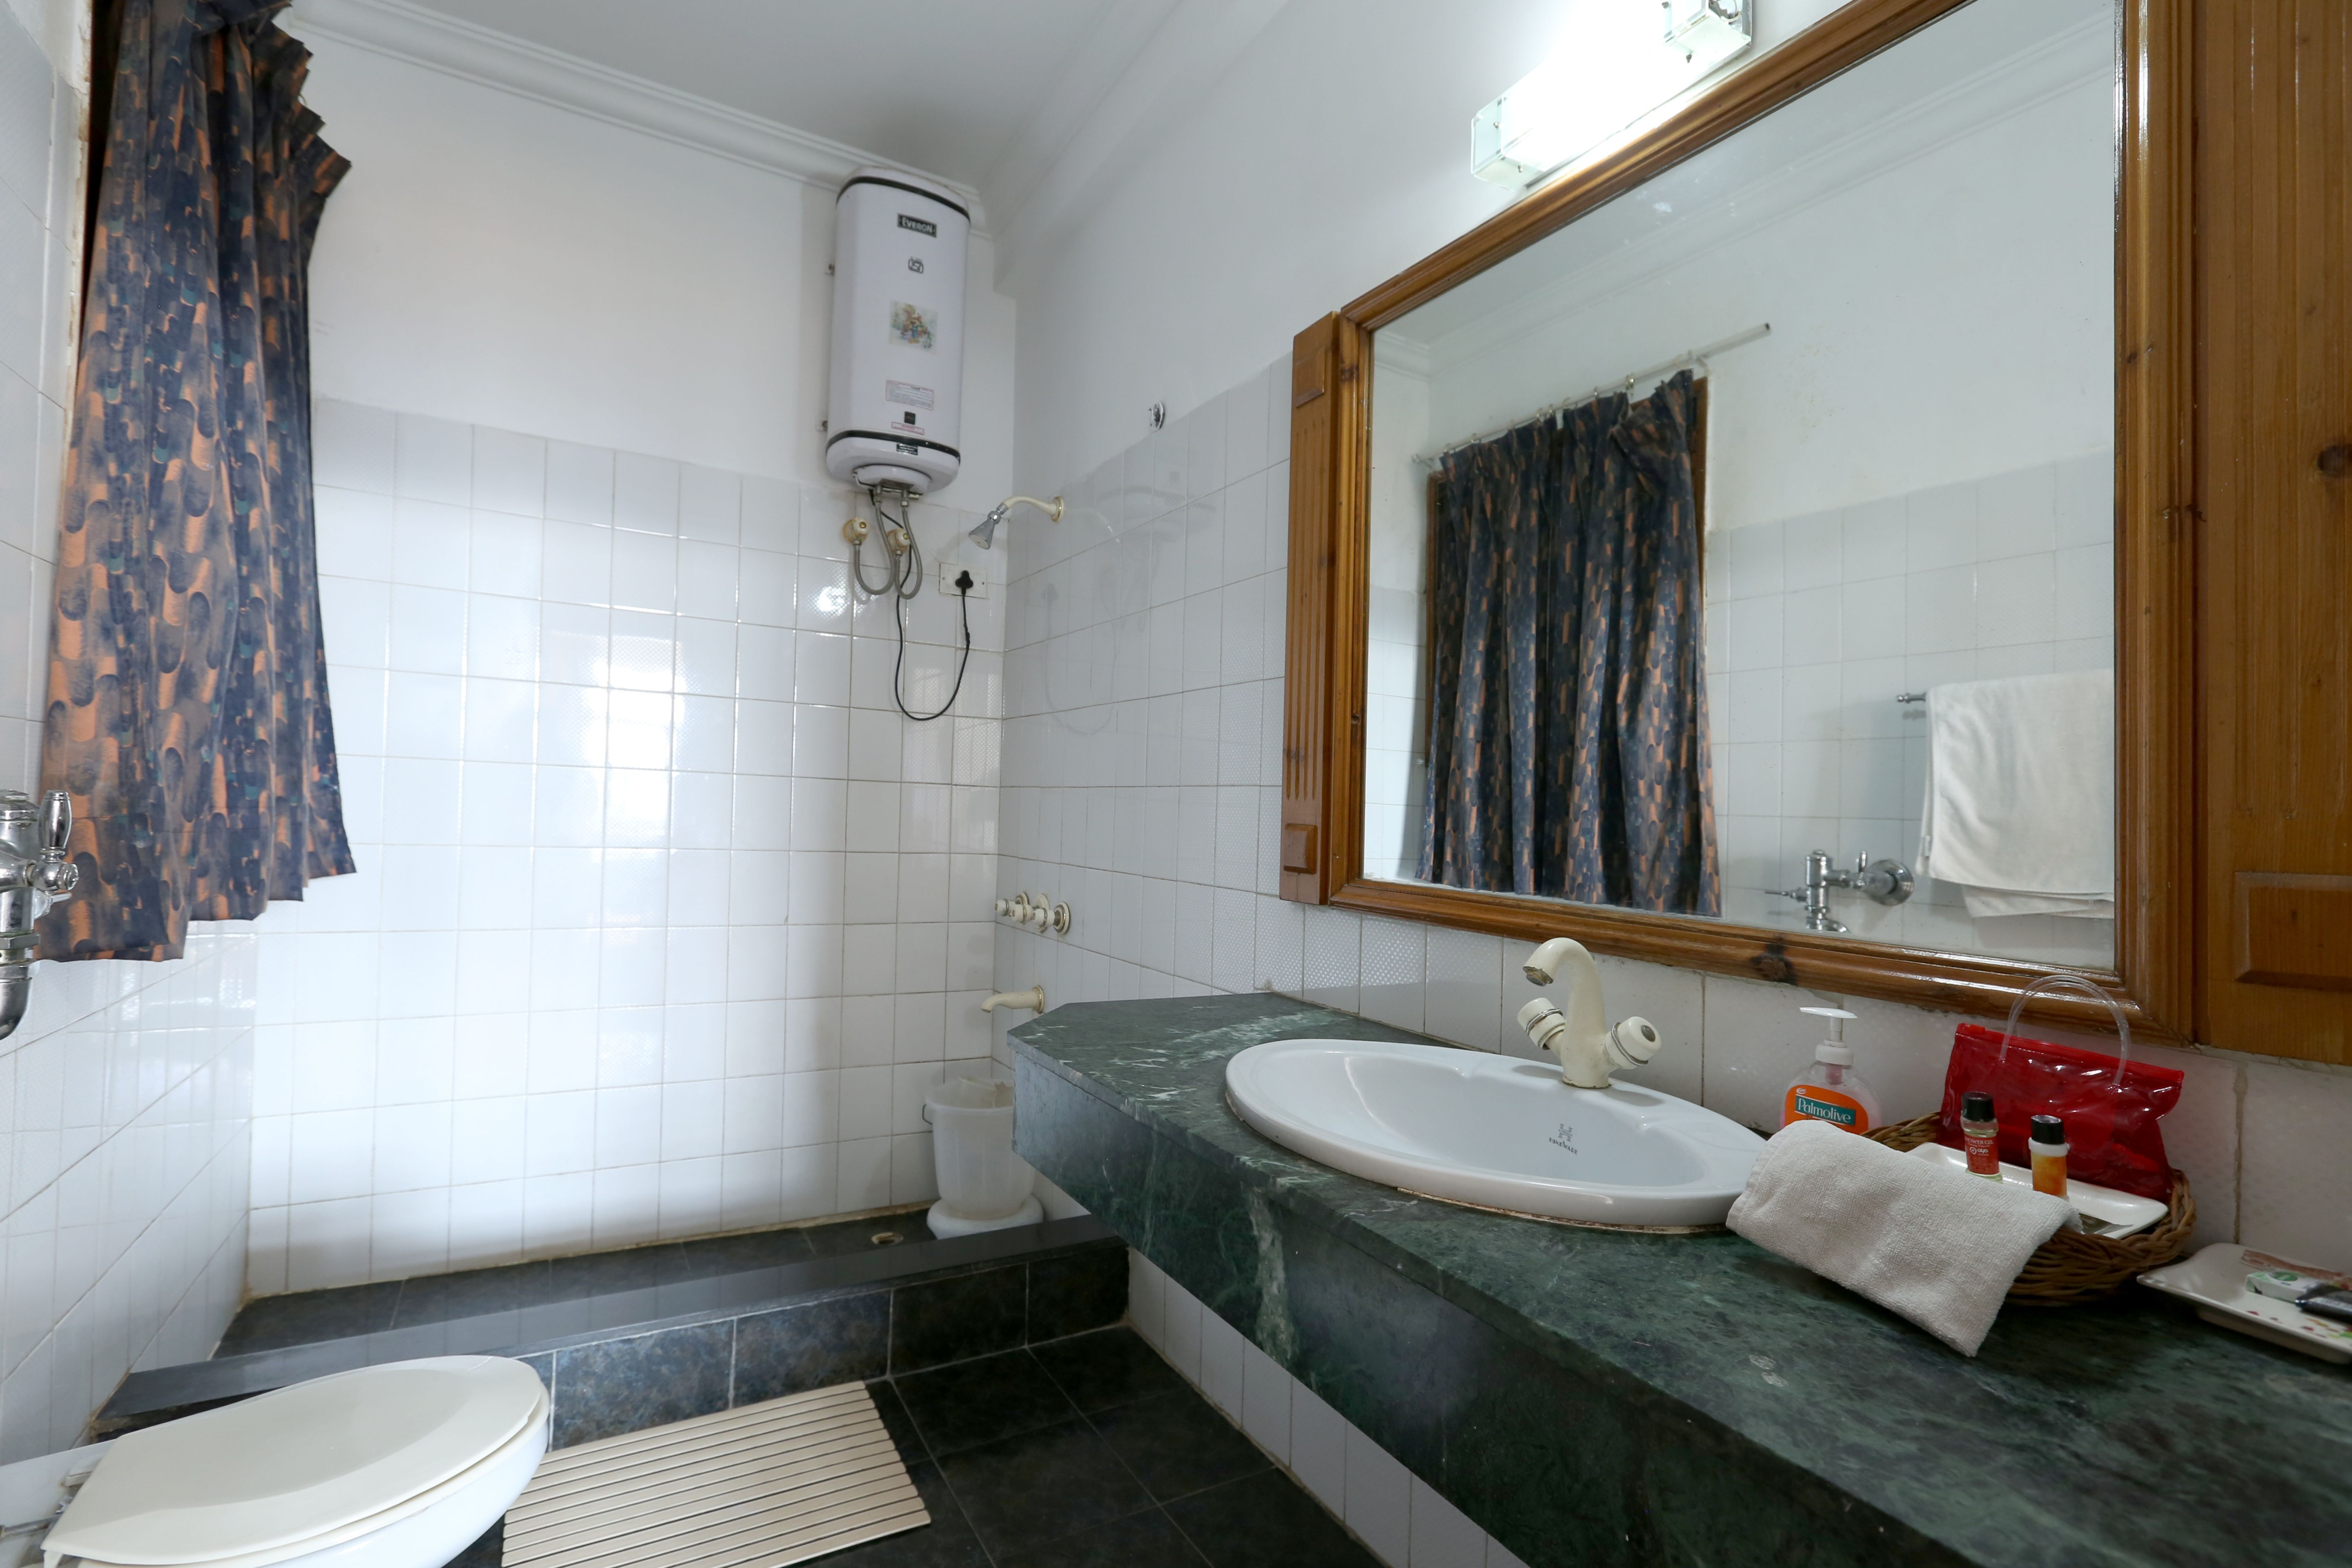 Room washrooms at Chail Residency